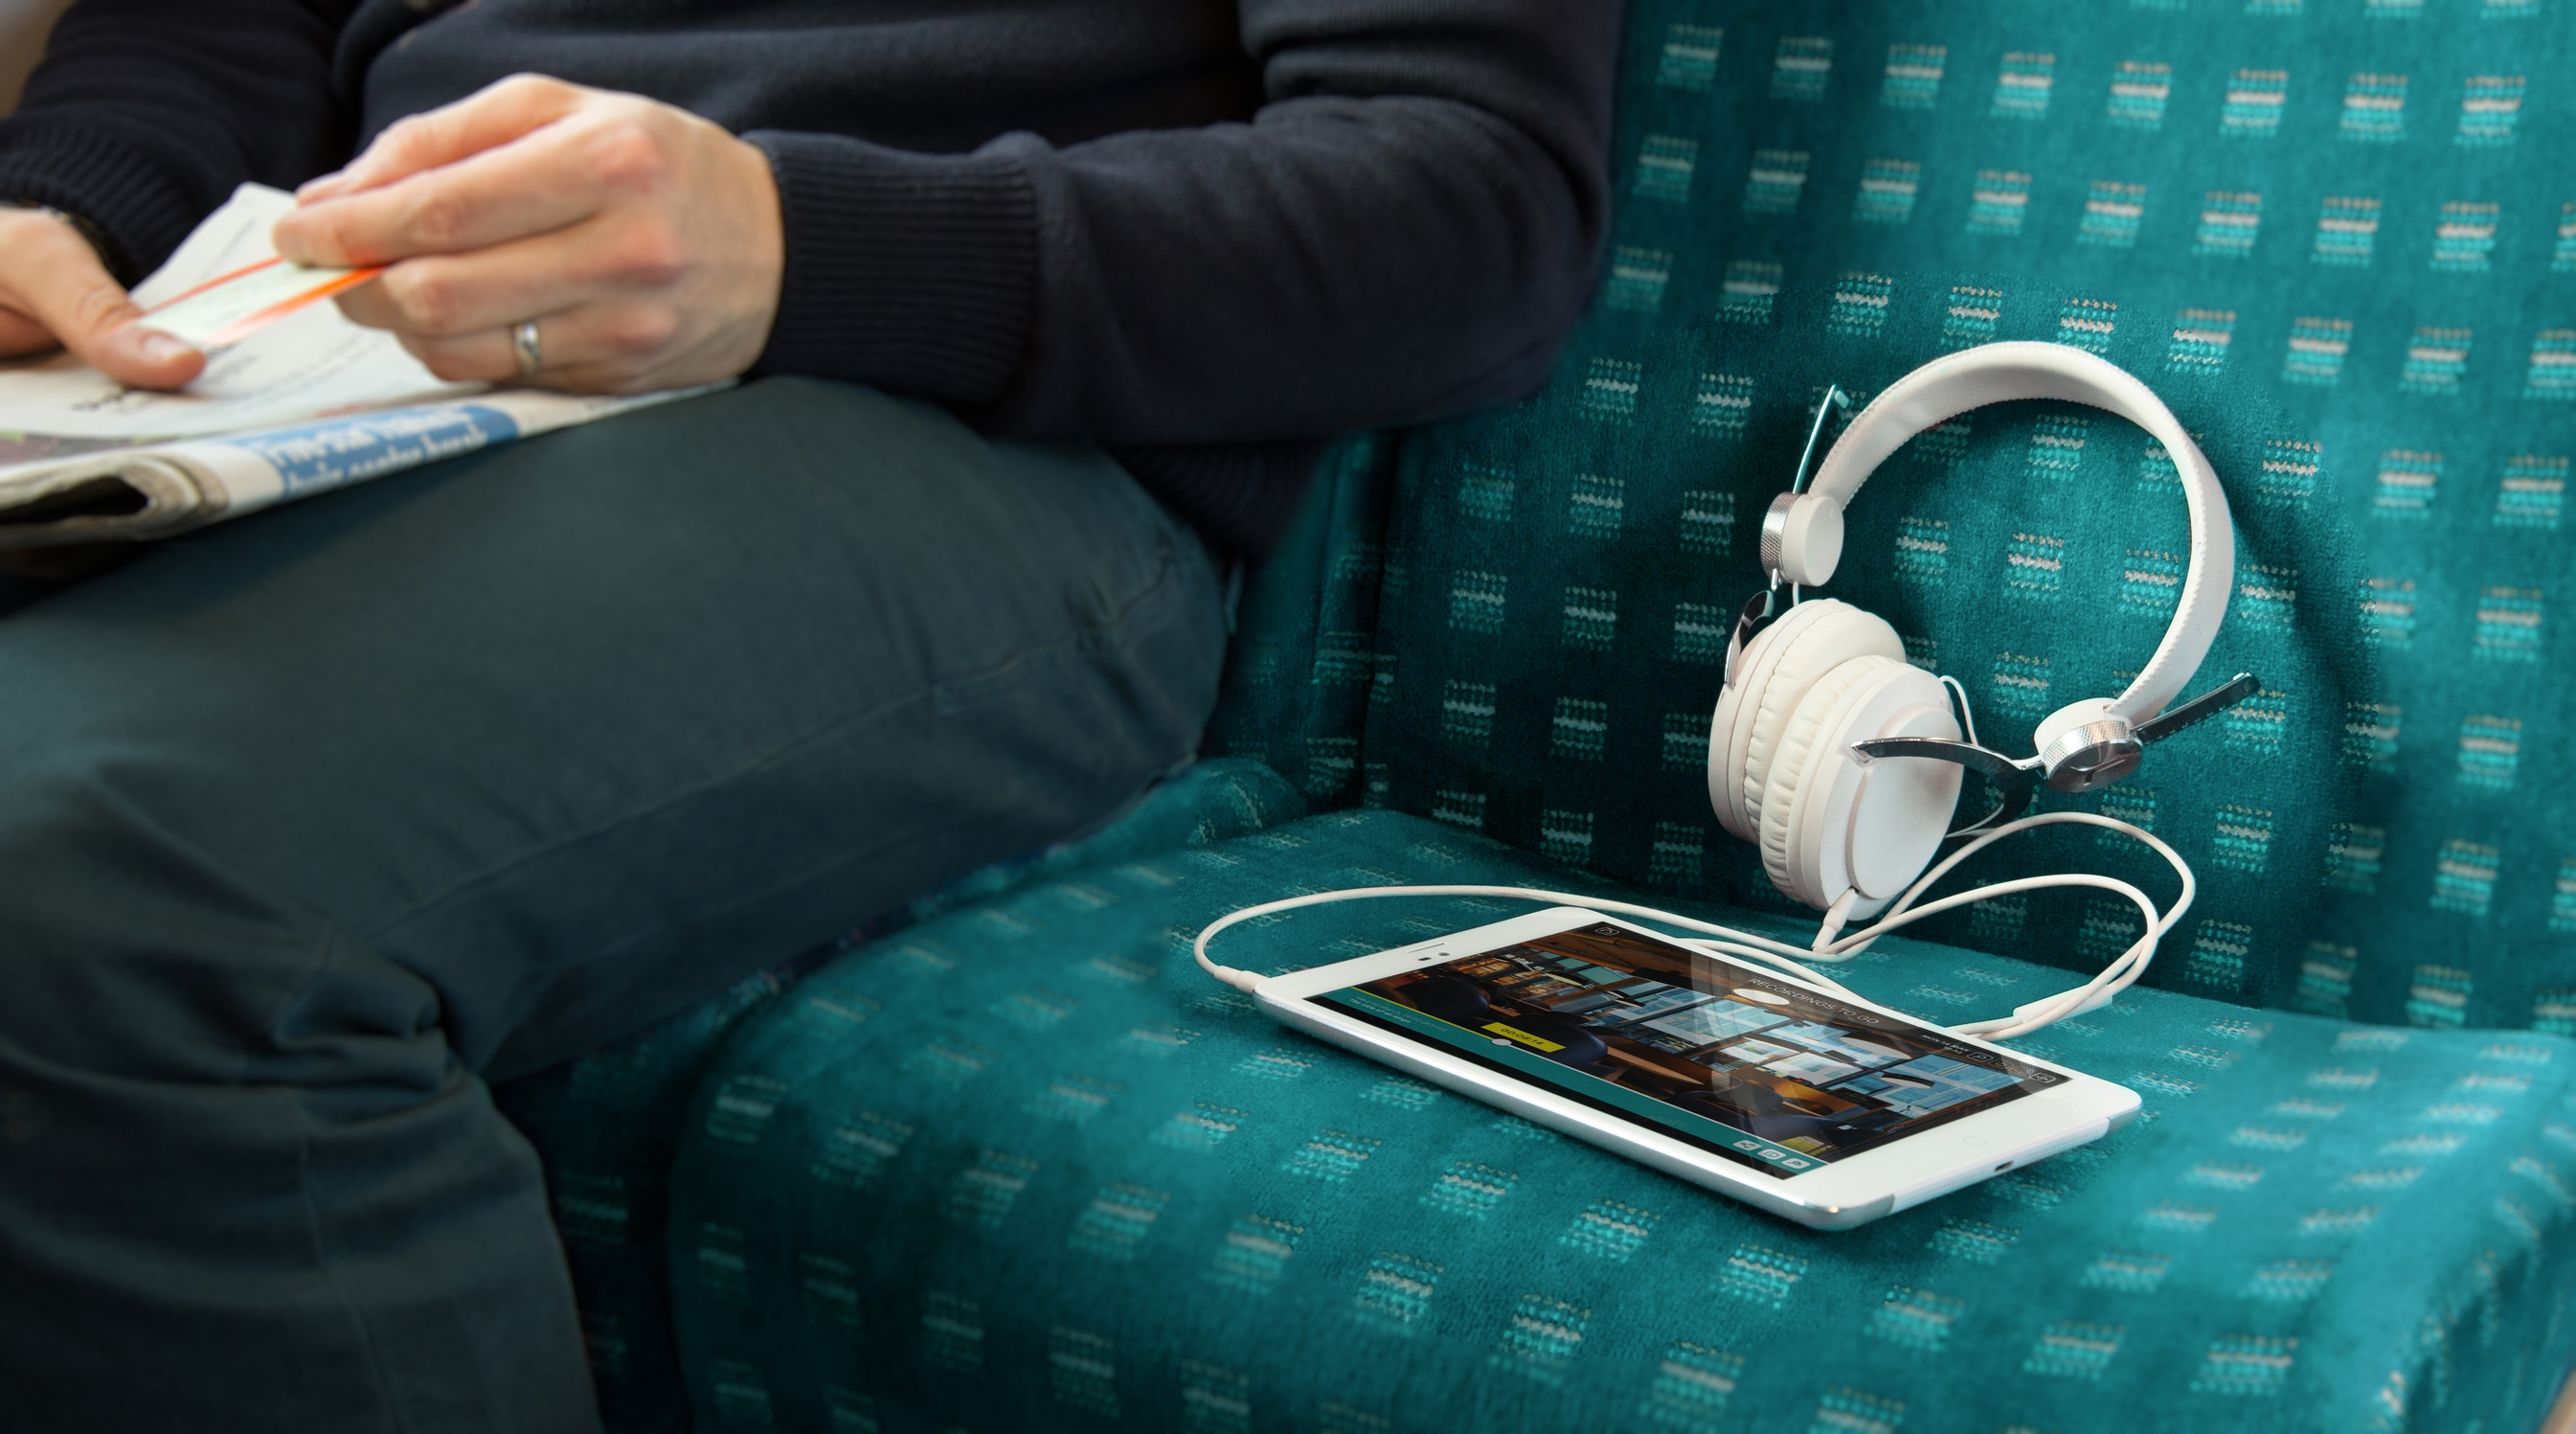 EE Launches TV-to-smartphone Recording